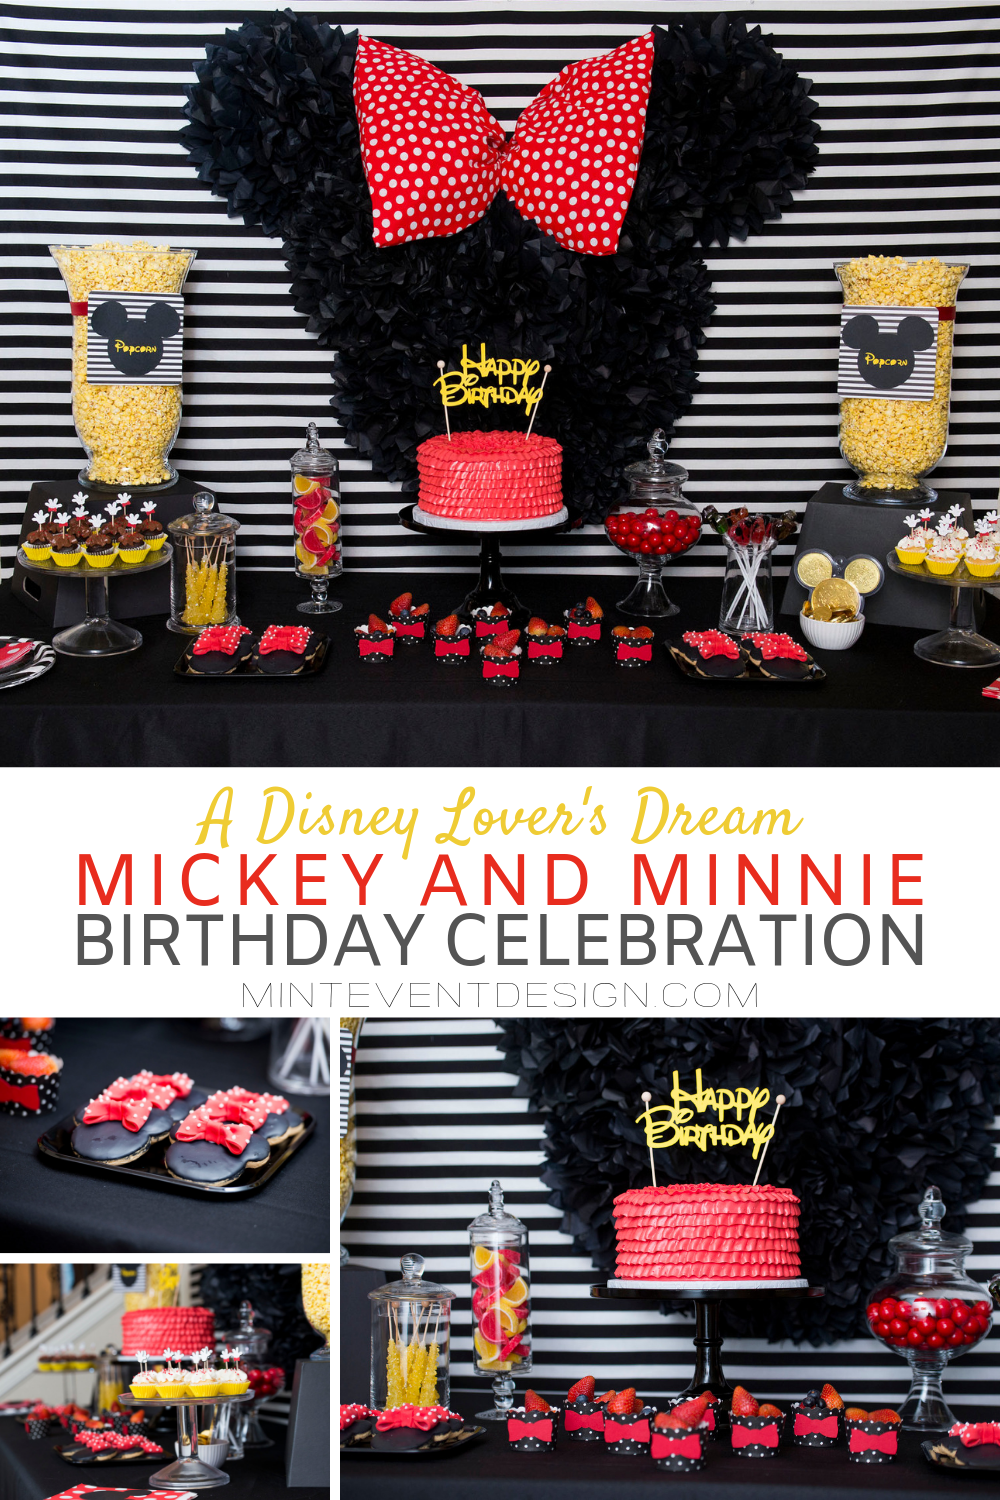 Adorable Mickey and Minnie Birthday Celebration, a Disney Lover's Dream from Austin based Party Stylist- Mint Event Design